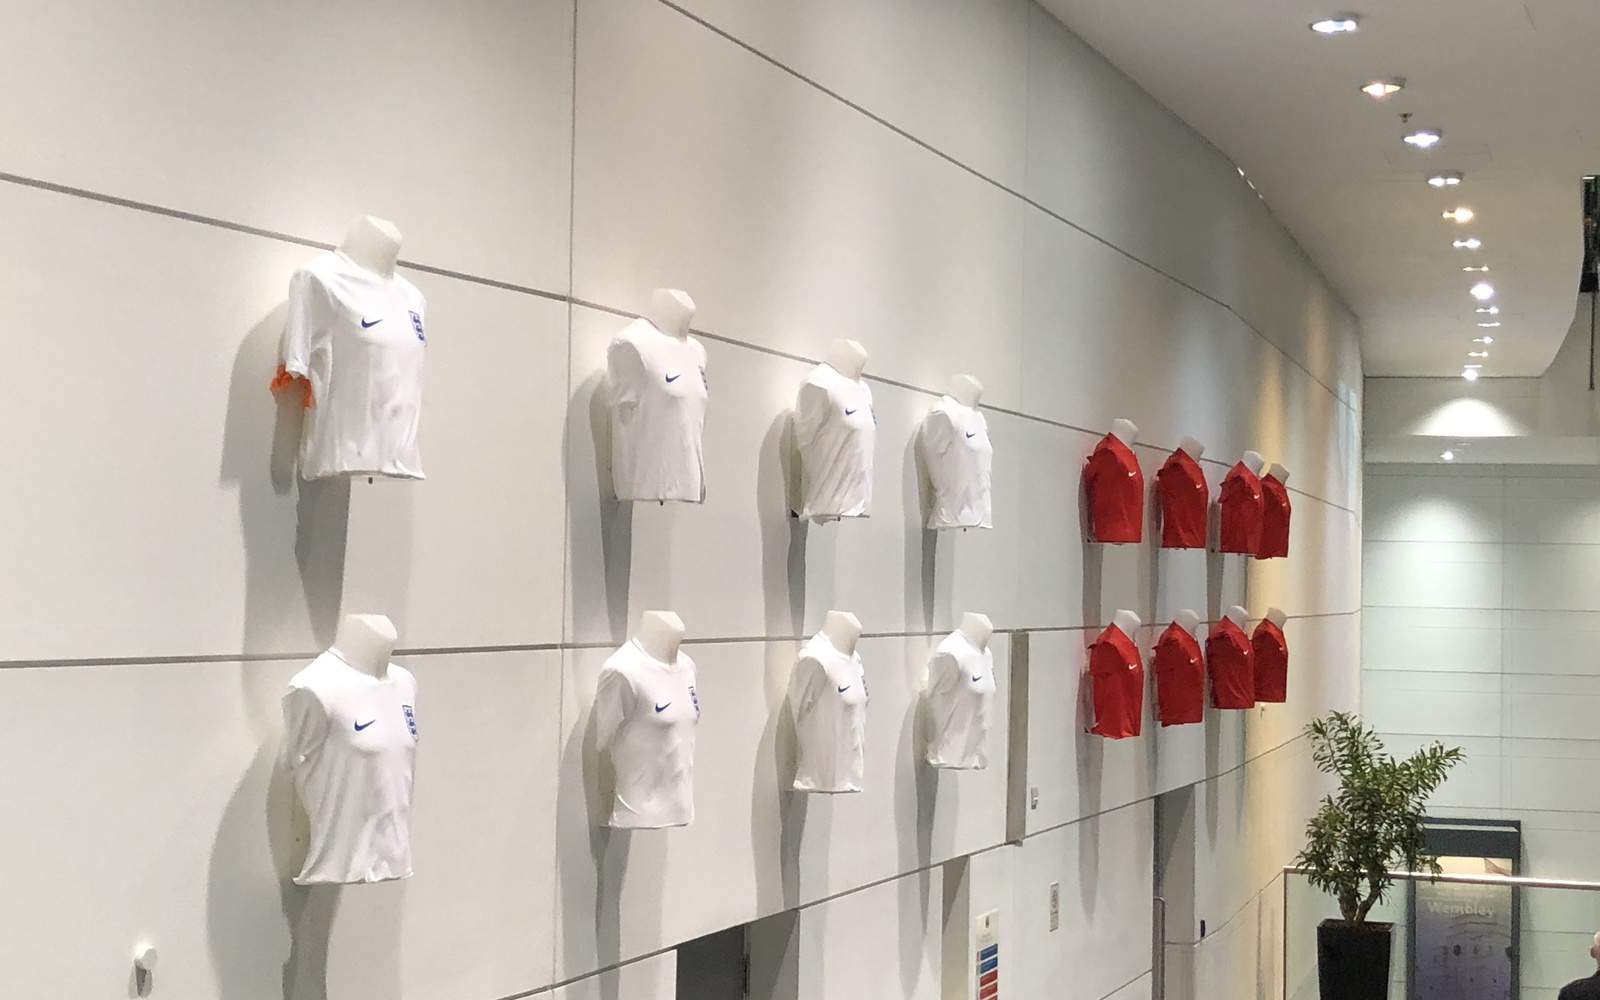 The team shirts displayed